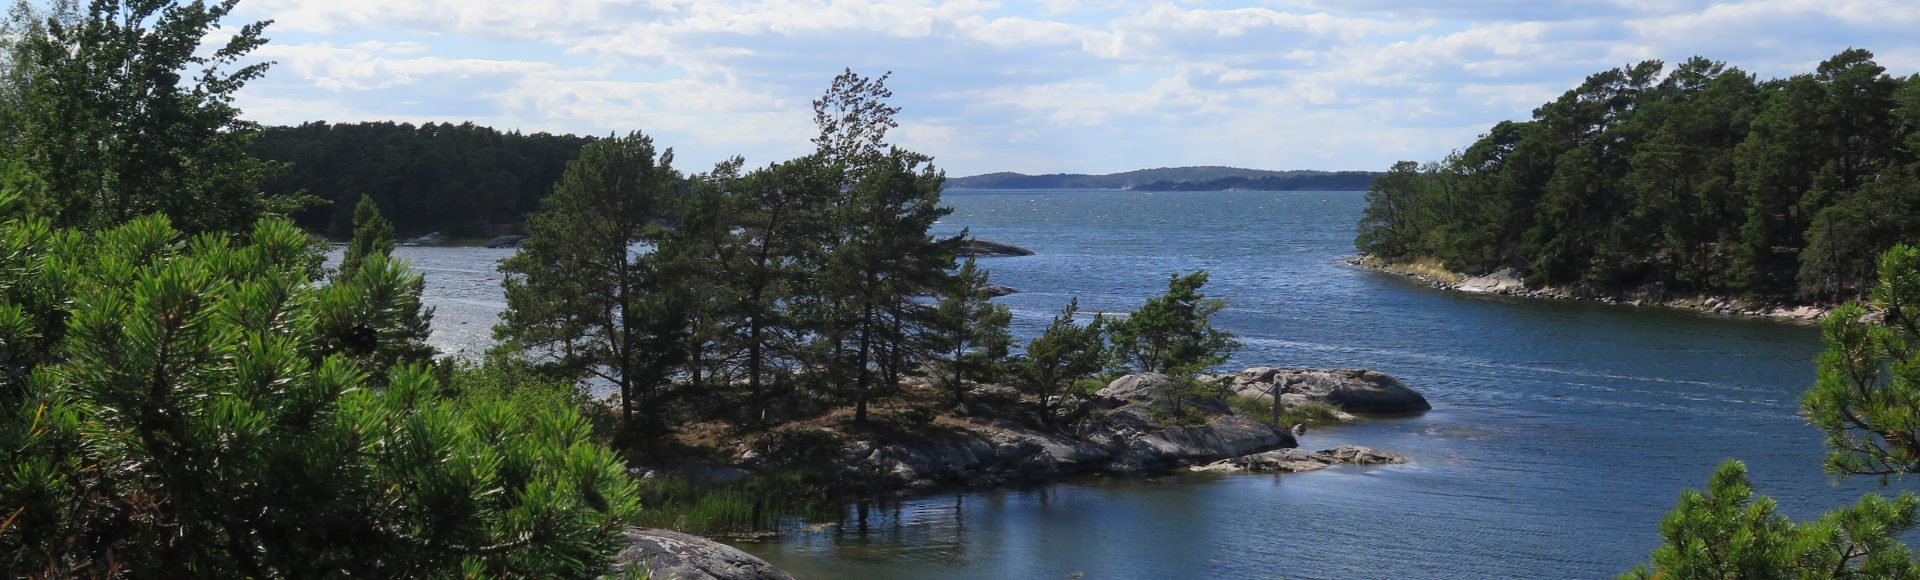 Nudging to Nåttarö